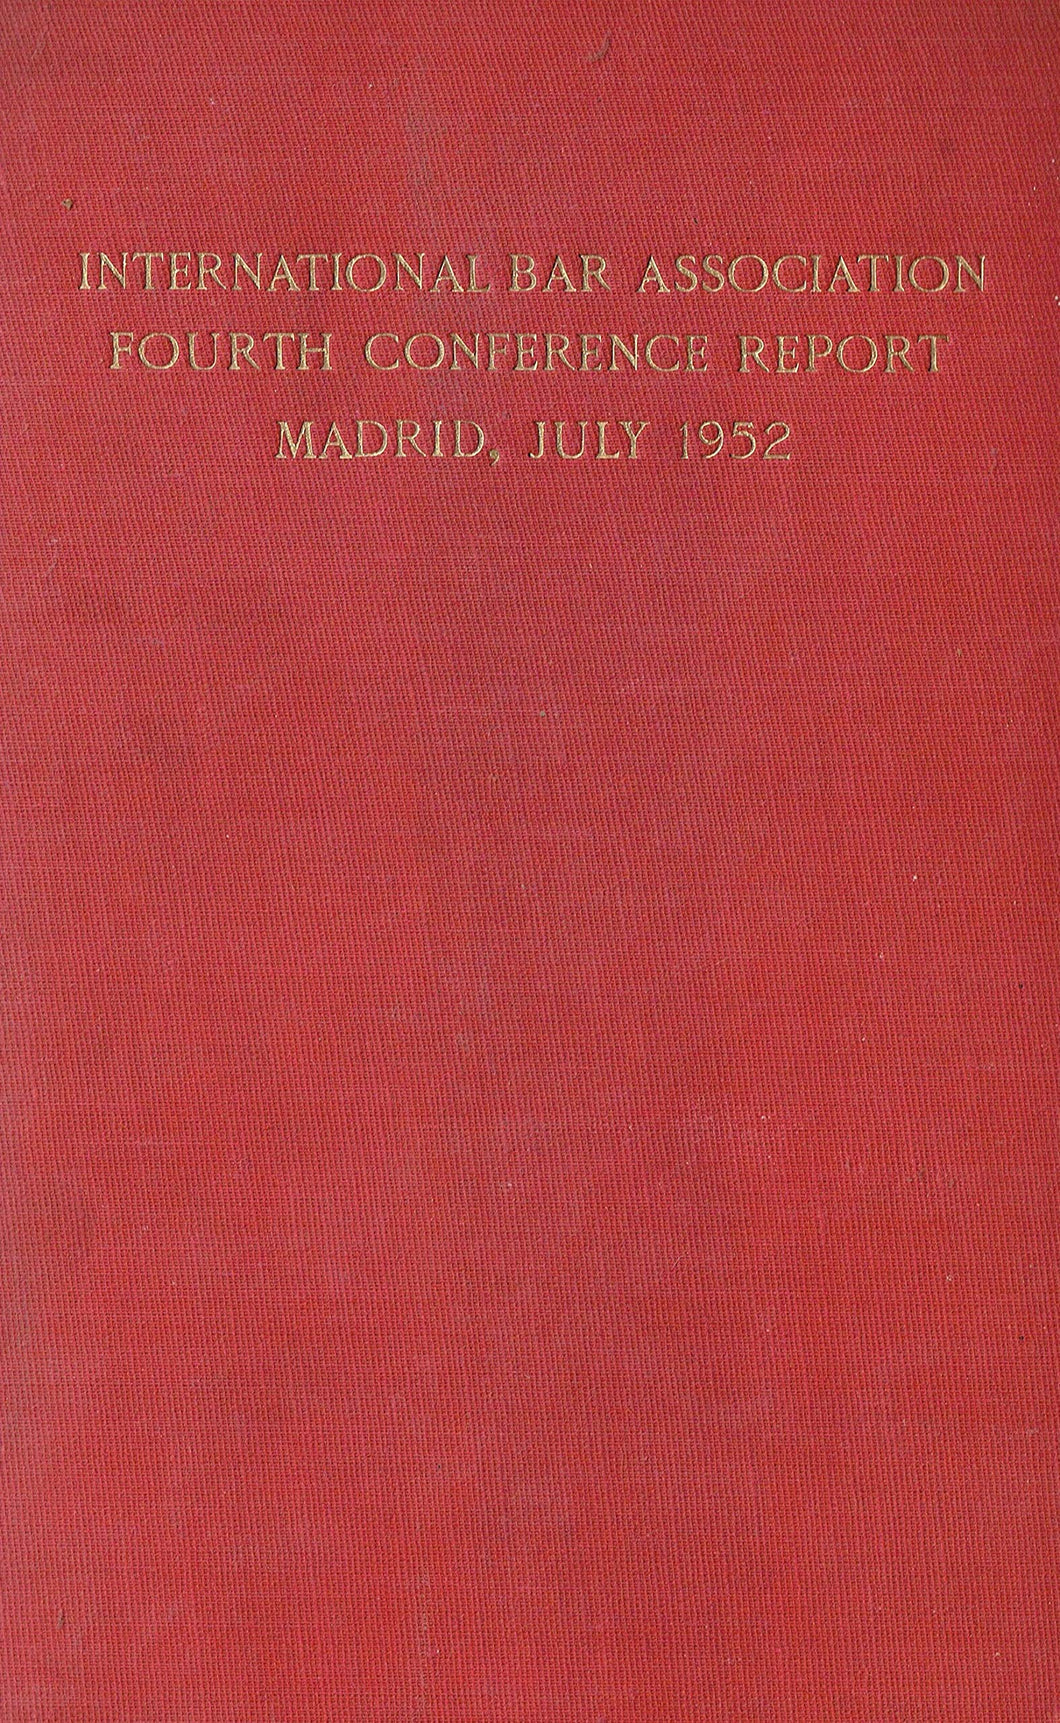 International Bar Association Fourth Conference Report, Madrid, July 1952